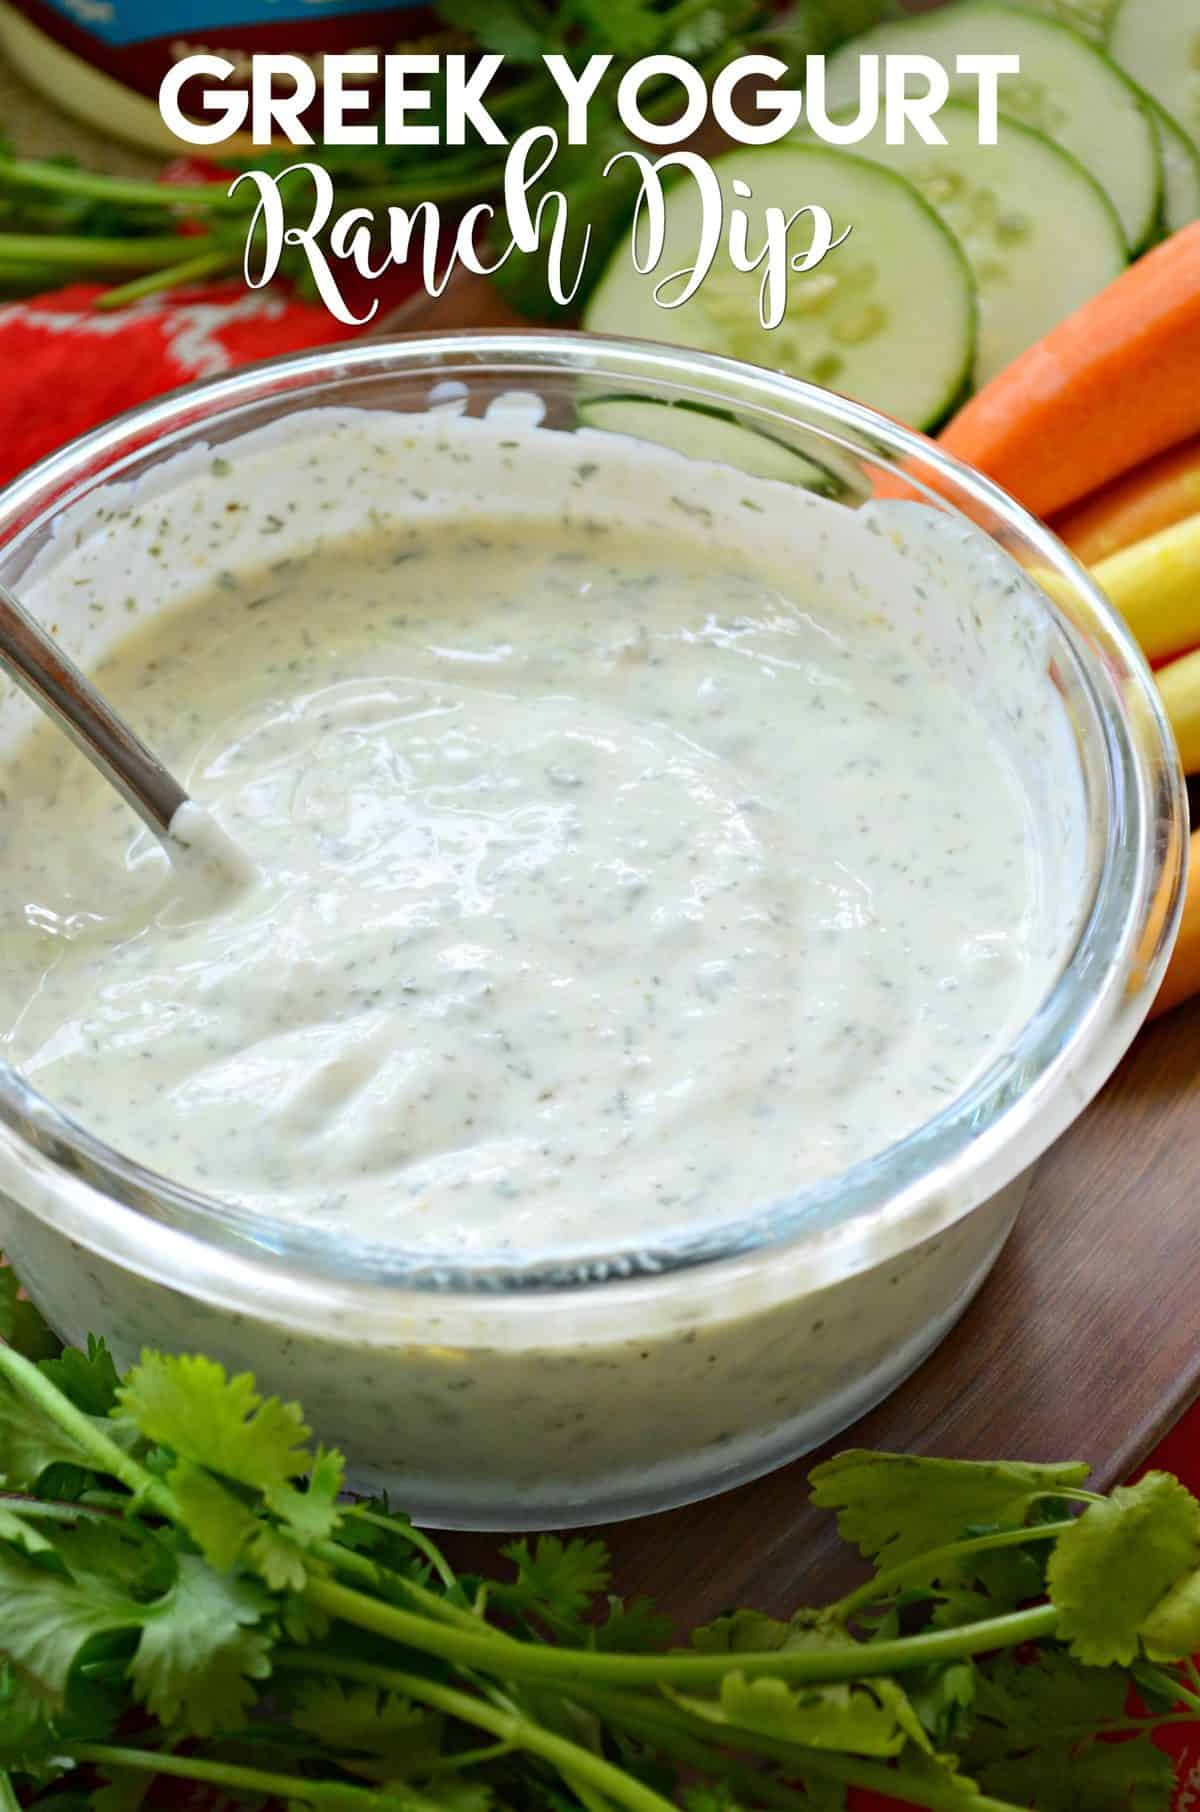 closeup of Greek Yogurt Ranch Dip in glass bowl with metal spoon, veggies in background, and title text.